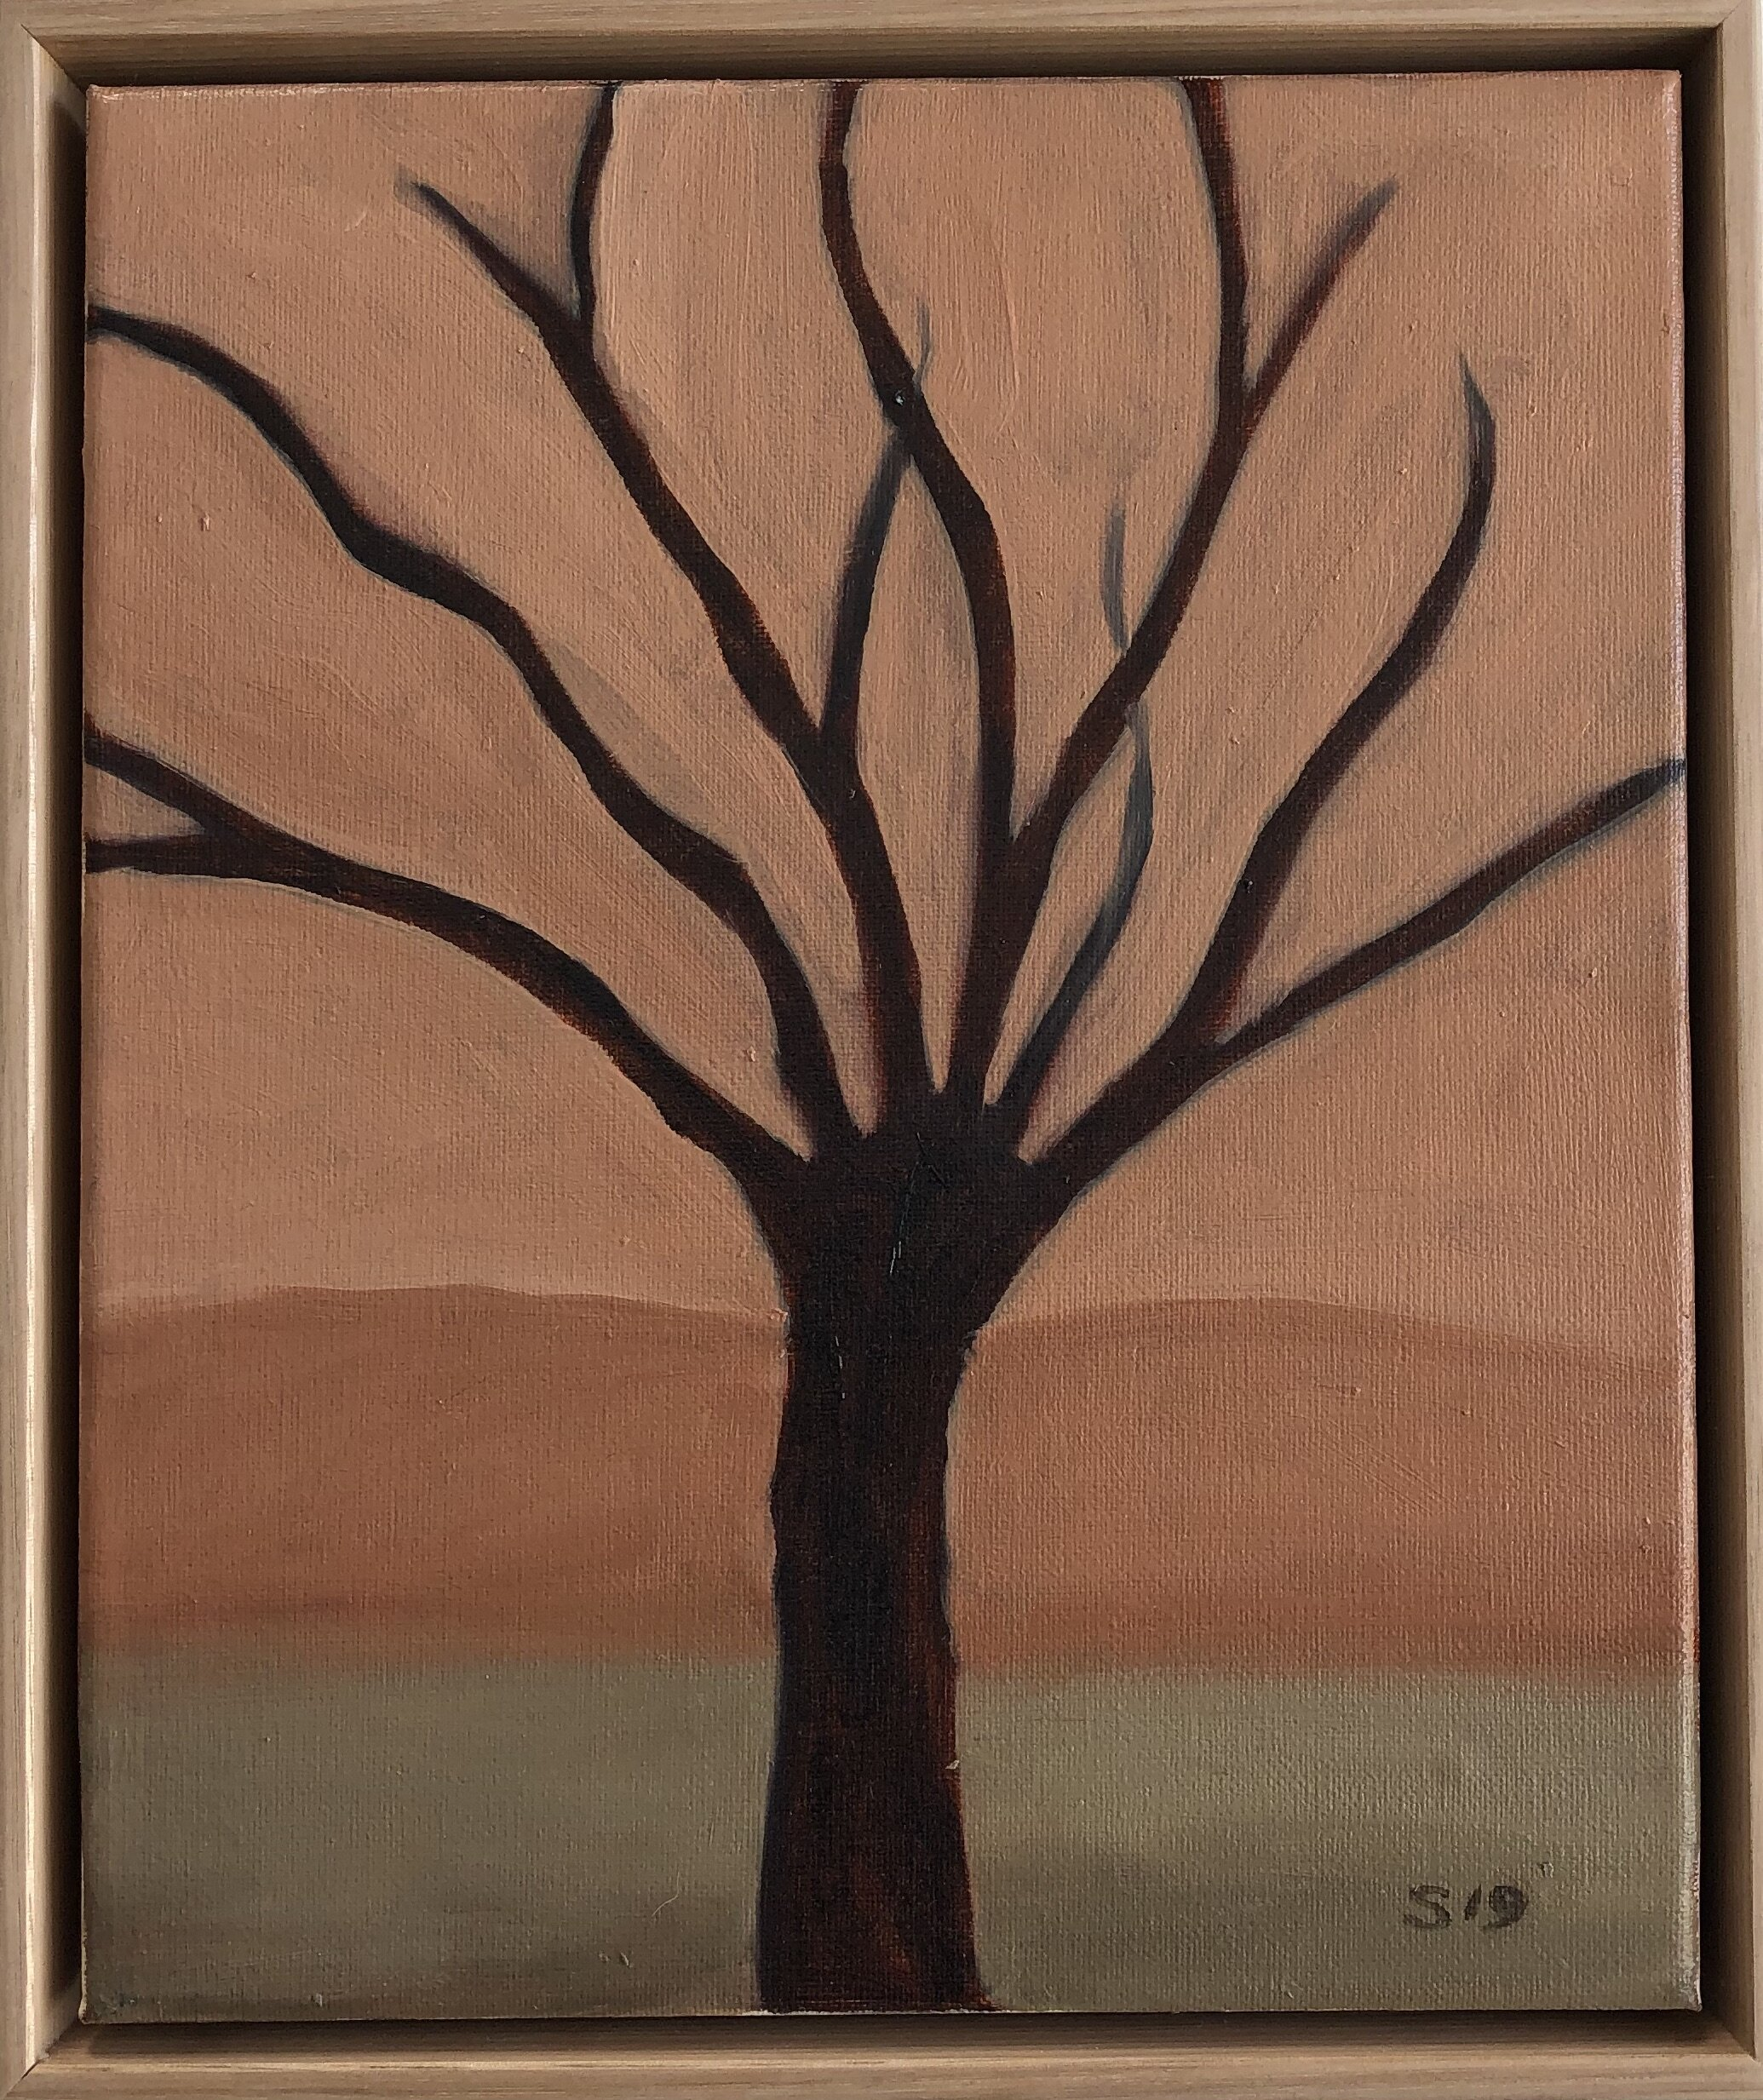 8. Malcolm Sands Tree 2019 oil on canvas 32.5x27.5cm framed $300.00